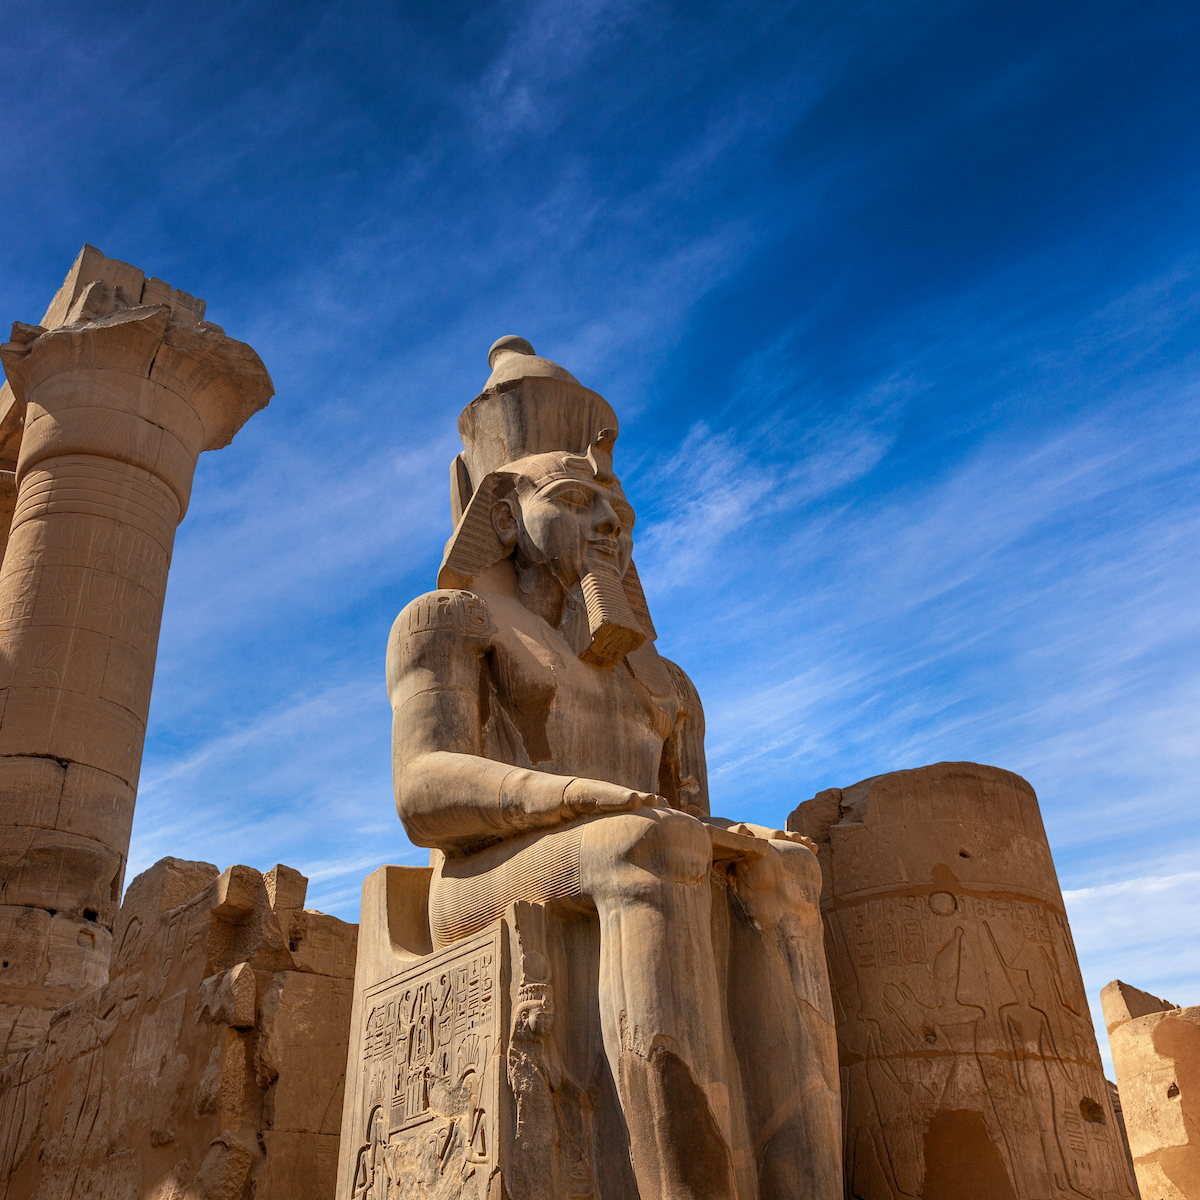 Cairo, Luxor, And Highlights Of Egypt Tour From Eilat Or Tel Aviv - 4 Days 11